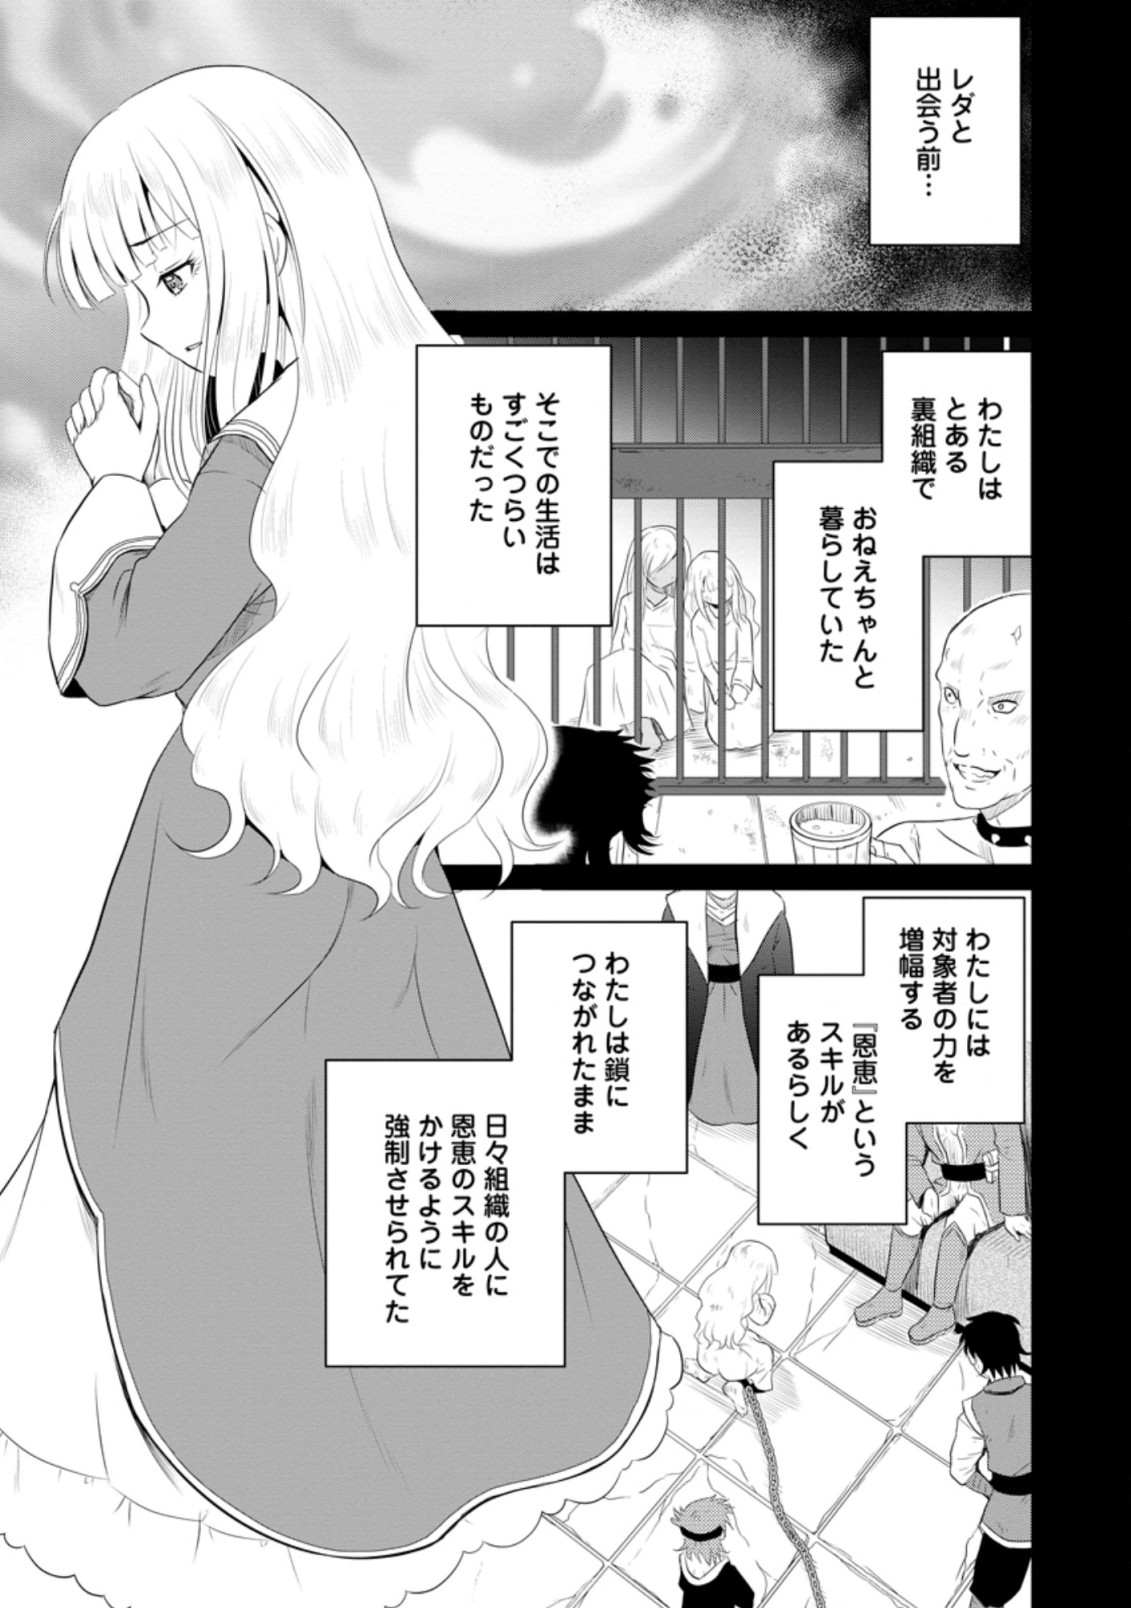 Manga Raw The Frontier Life of The Low-Class Ossan Healer And The Lovery Girl Manga Chapter 10.1